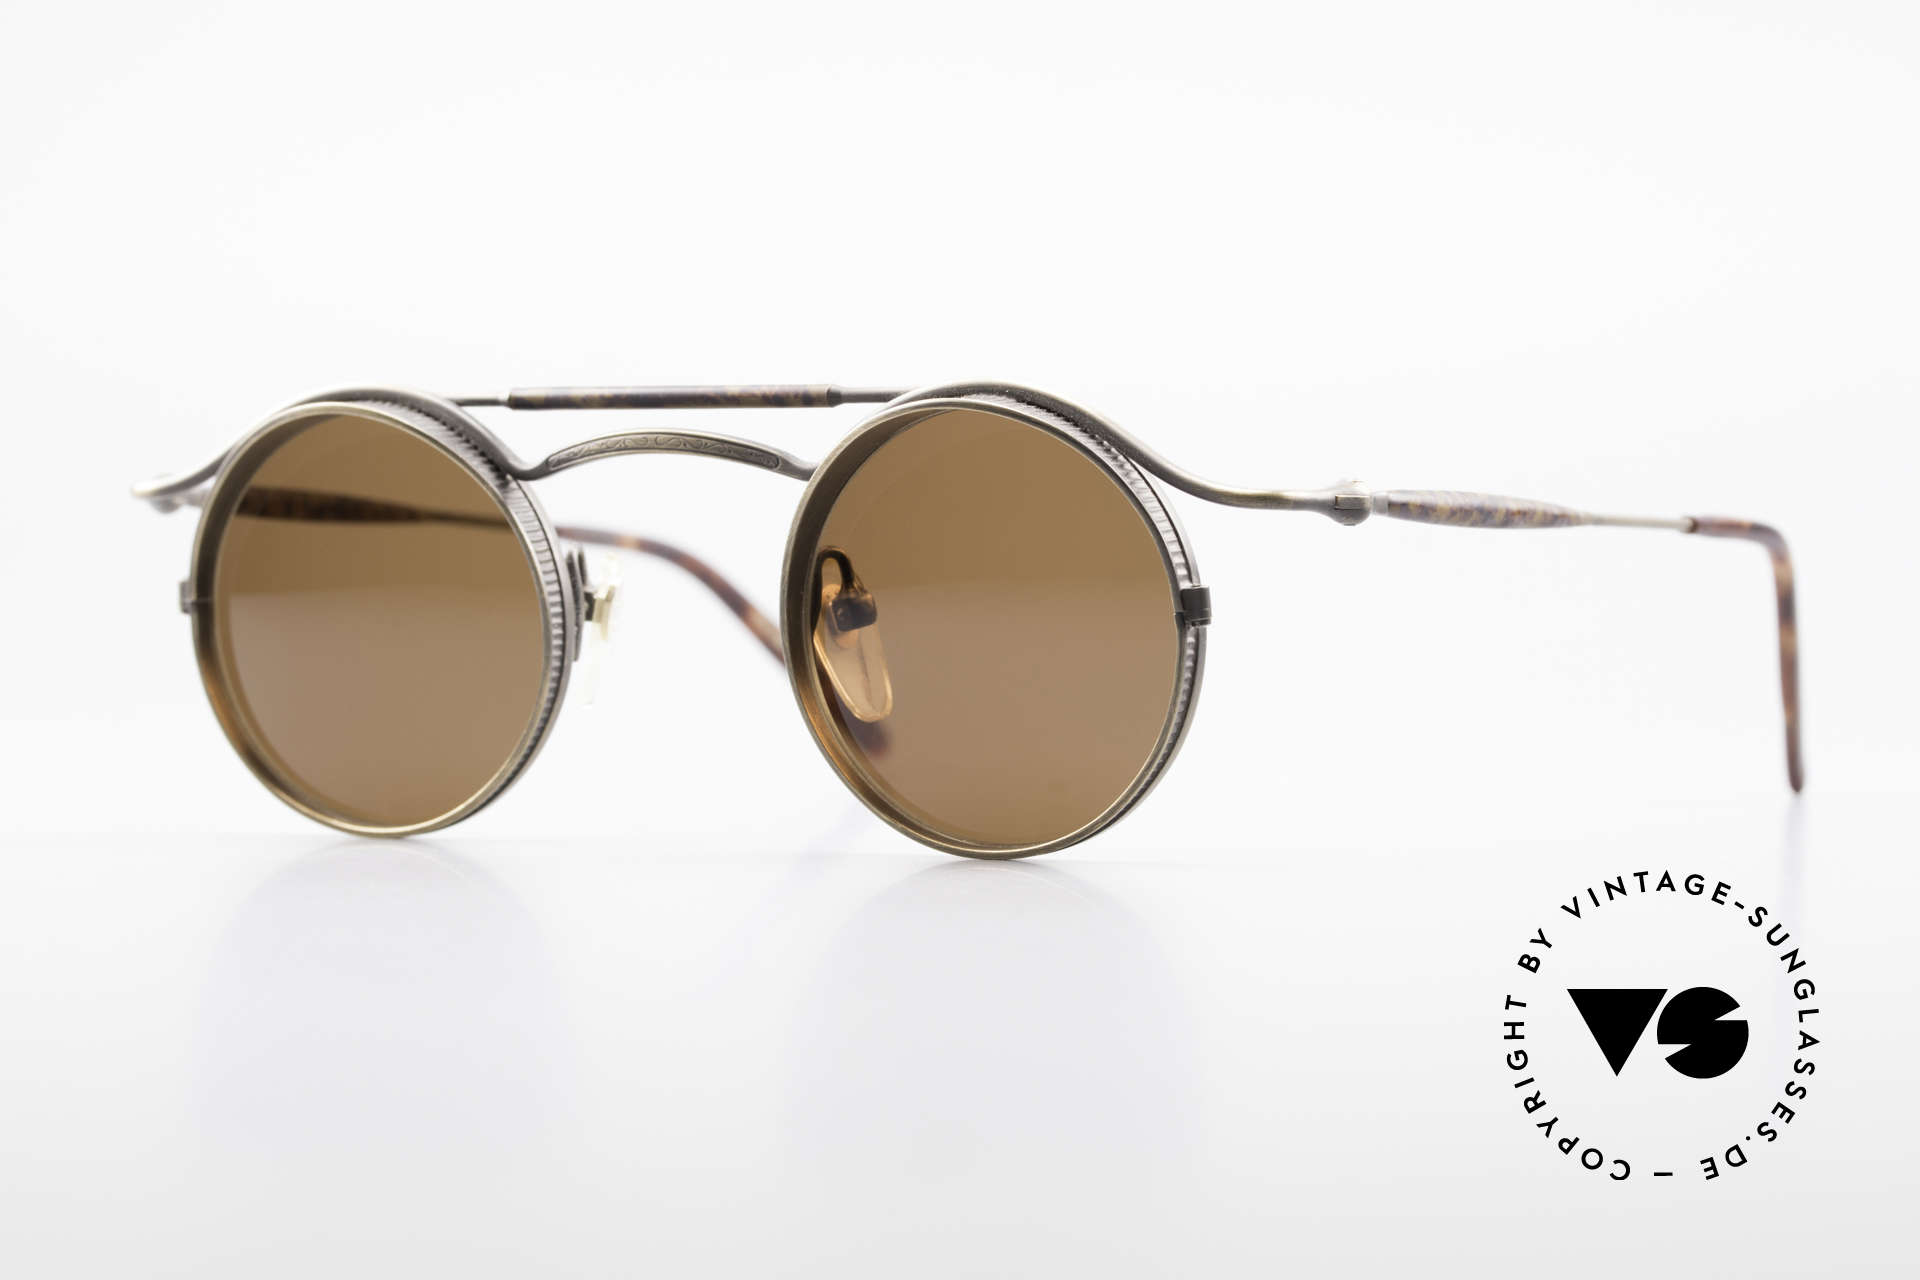 Matsuda 2903 Steampunk 90's Sunglasses, vintage Matsuda designer sunglasses from the mid 90's, Made for Men and Women